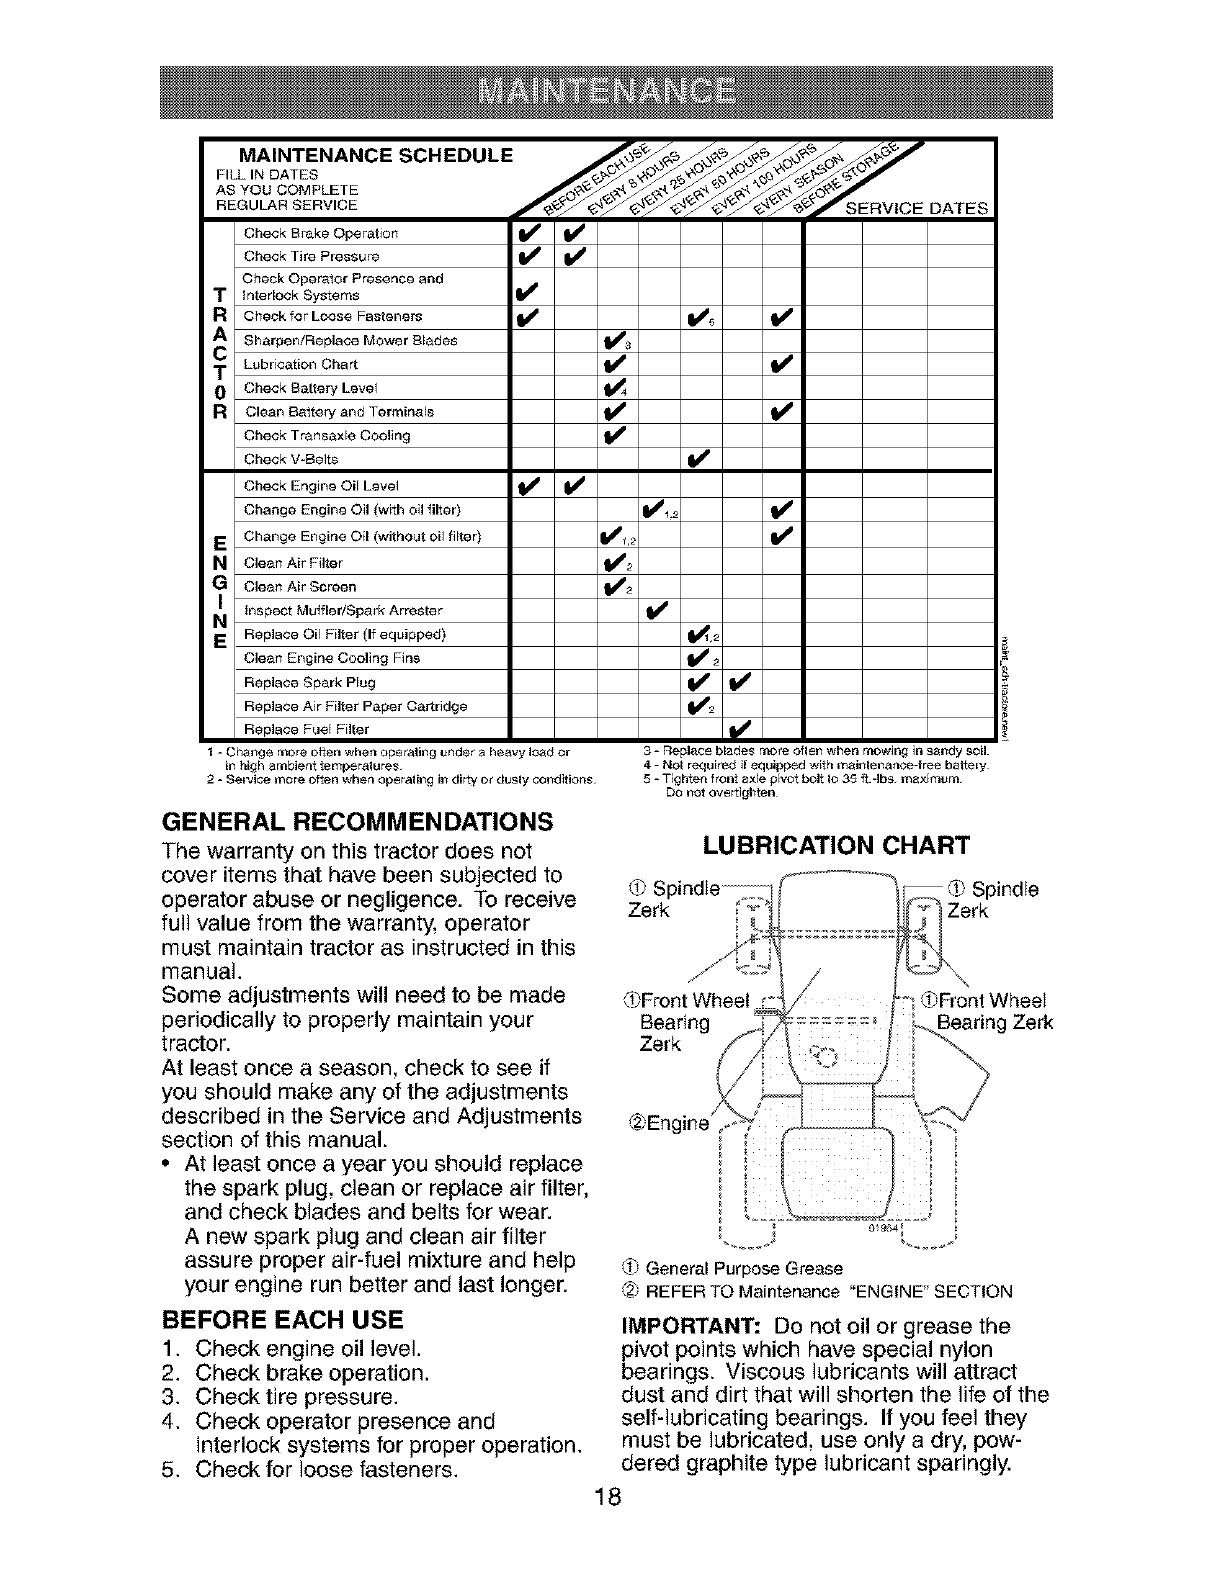 Page 18 of Craftsman Lawn Mower 917.273823 User Guide